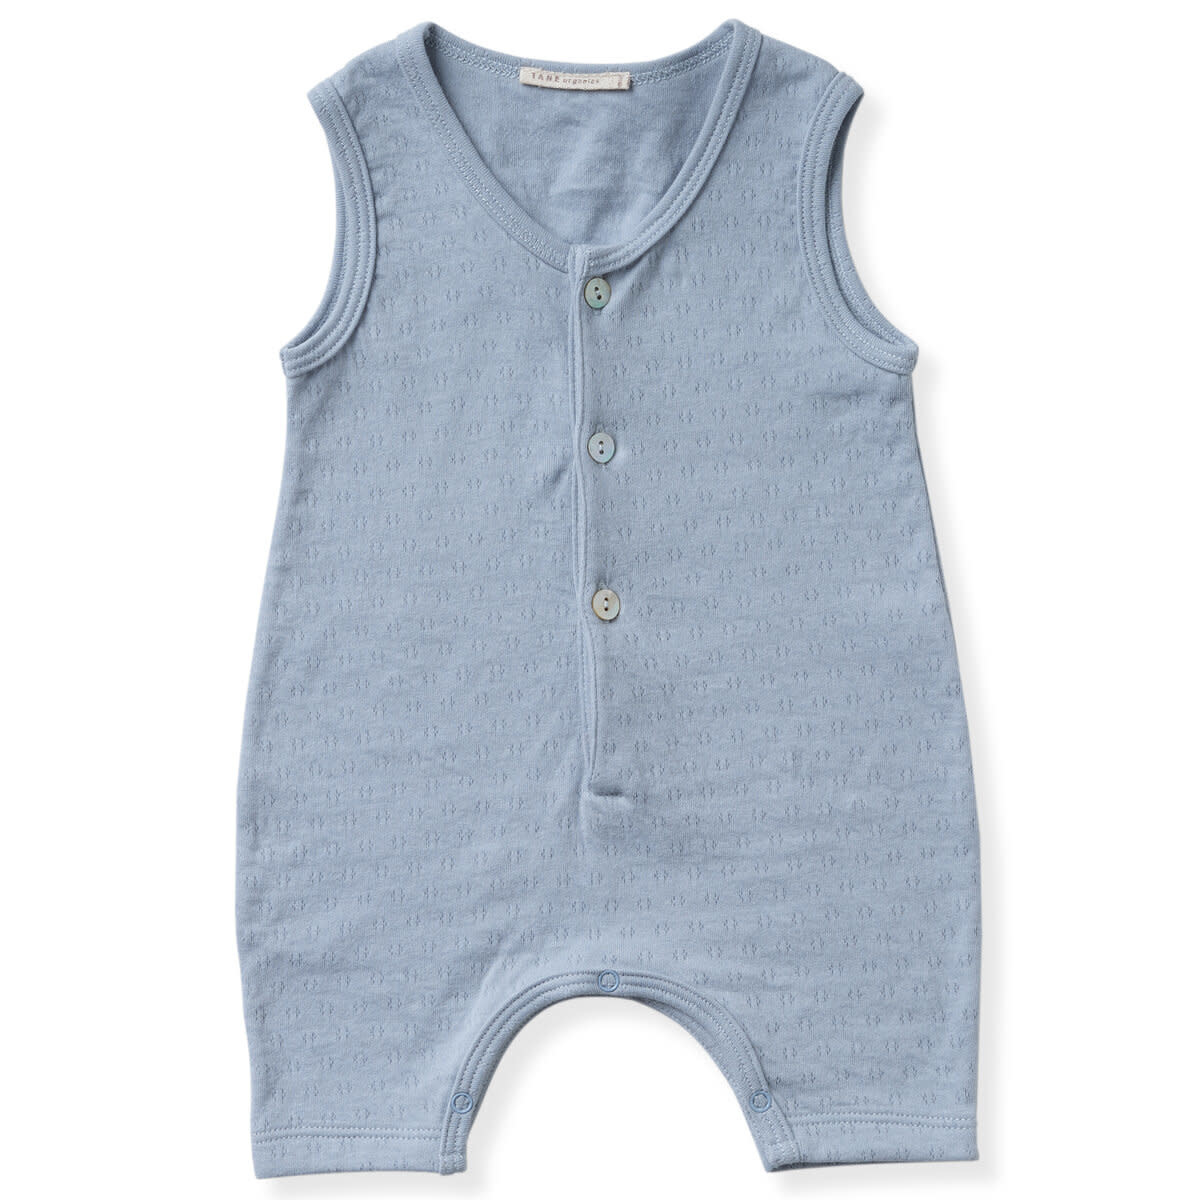 TANE ORGANICS Sleeveless Henley Playsuit